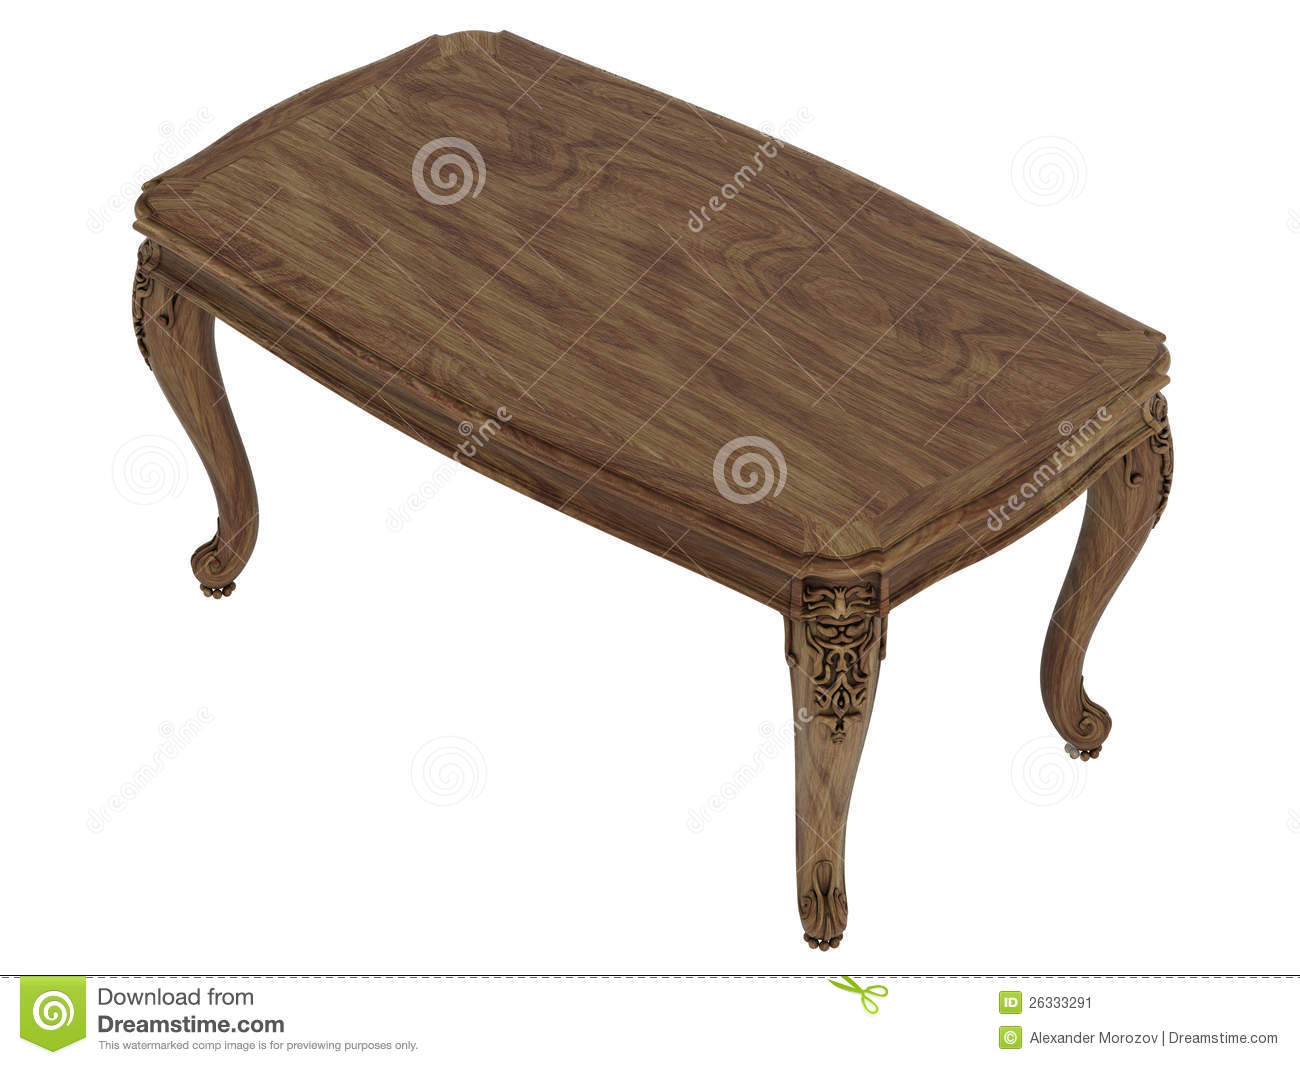 Marvelous photograph of Antique Wooden Table Stock Image Image: 26333291 with #84A625 color and 1300x1065 pixels